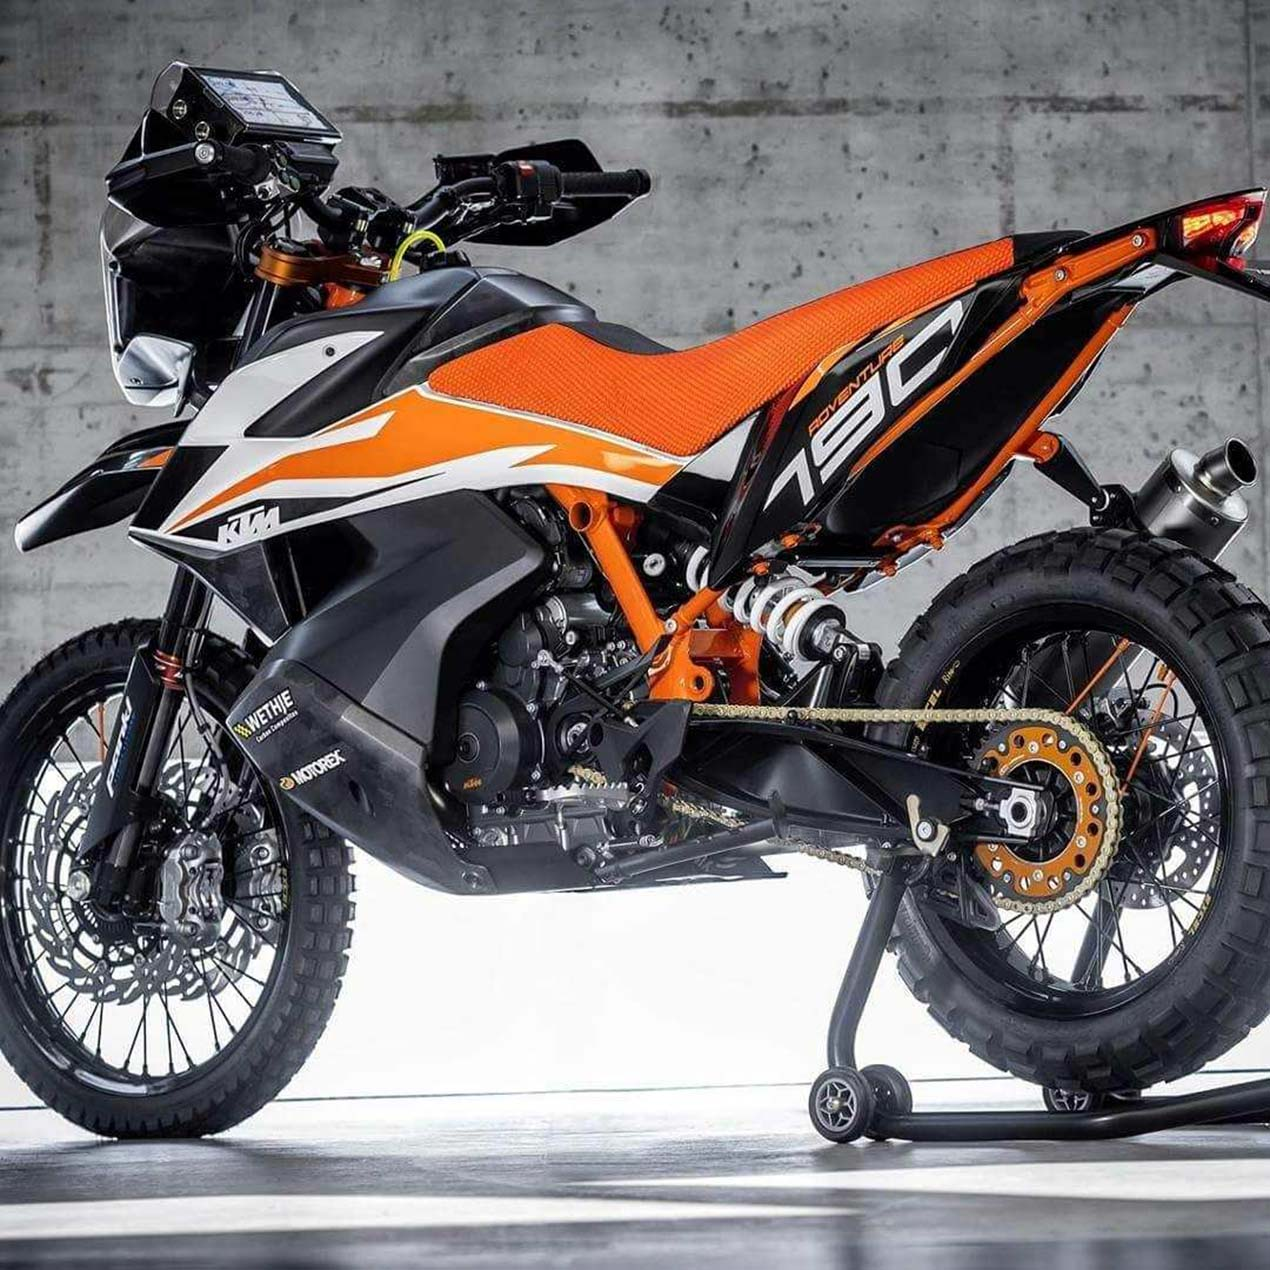 KTM-790-Adventure-prototype-01.jpg?ssl=1